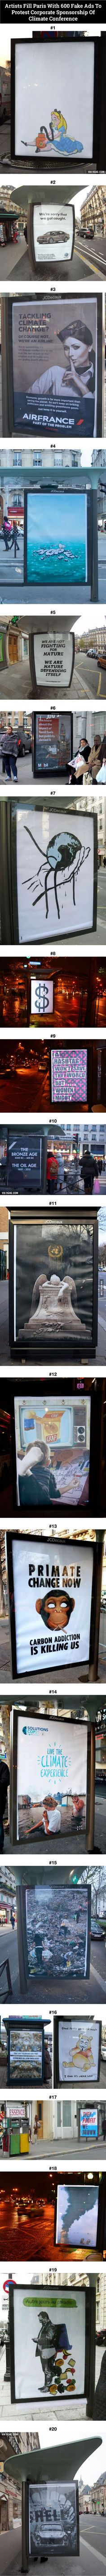 Artists Fill Paris With 600 Fake Ads To Protest Corporate Sponsorship Of Climate Conference - 9GAG